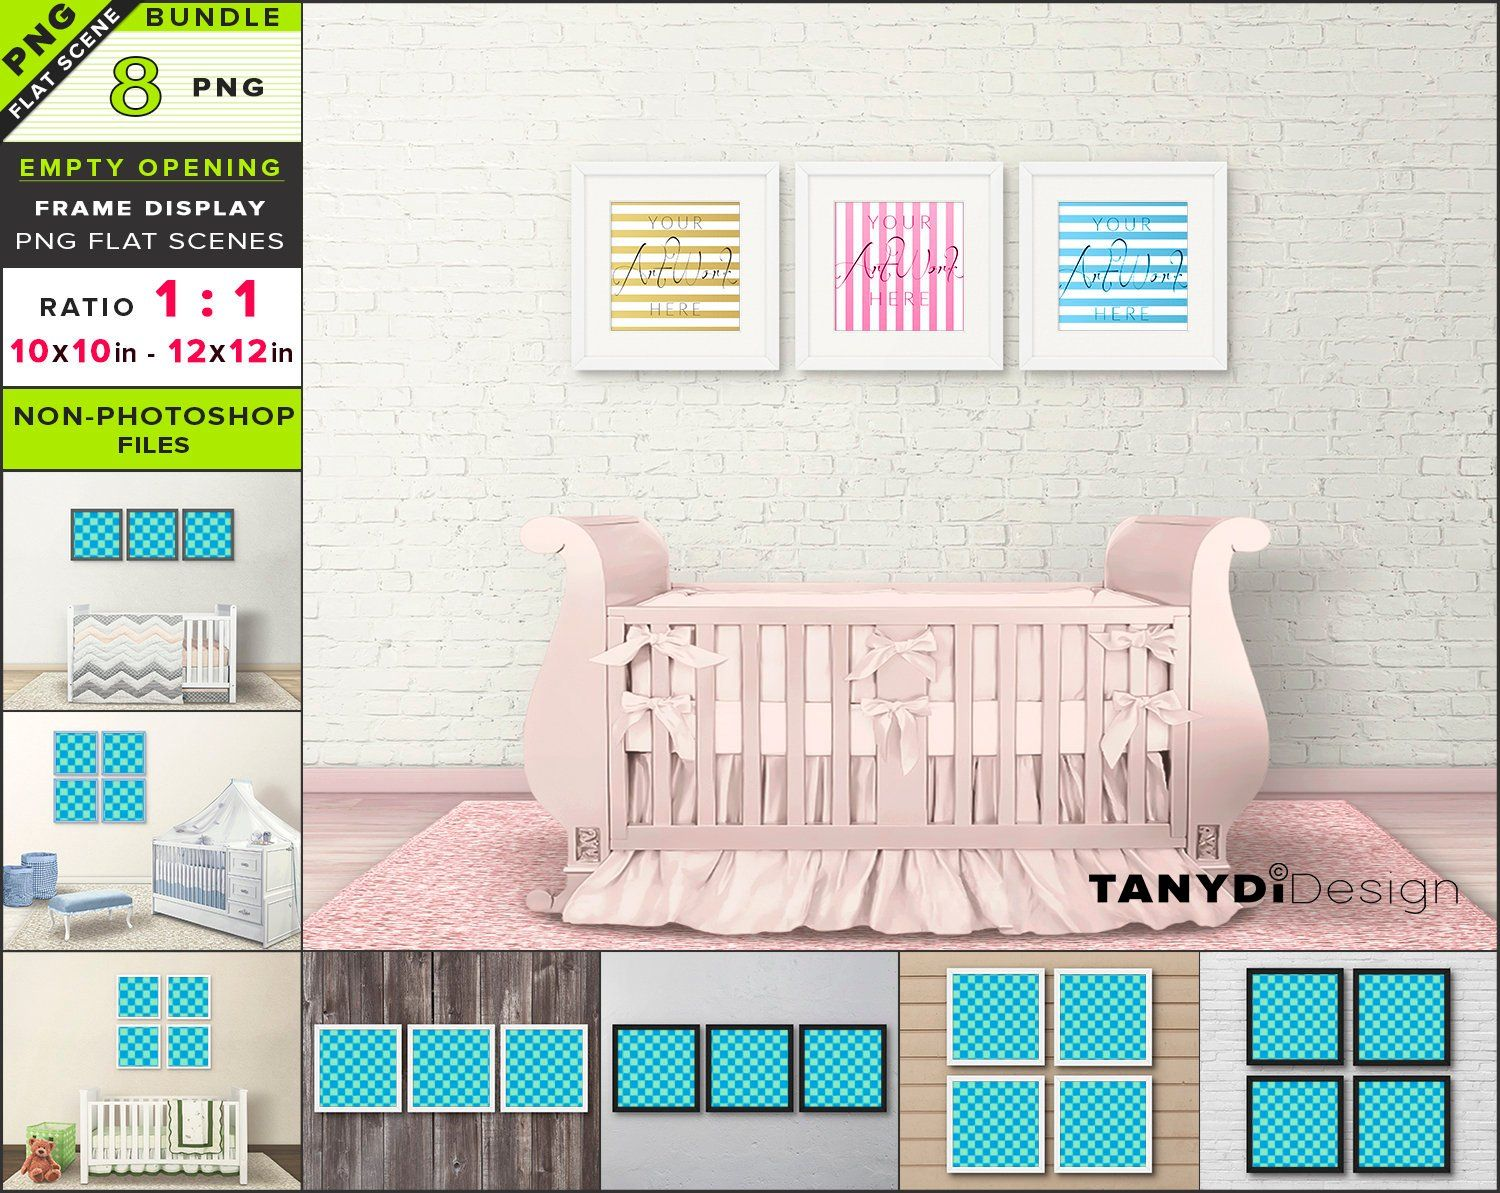 Square Blank Frame On Nursery Wall 8 Png Interior Scenes Mockup Bundle Empty Opening Set Of 3 4 Frames On Wall B F11 Rw 3 Frames On Wall Nursery Walls Interior